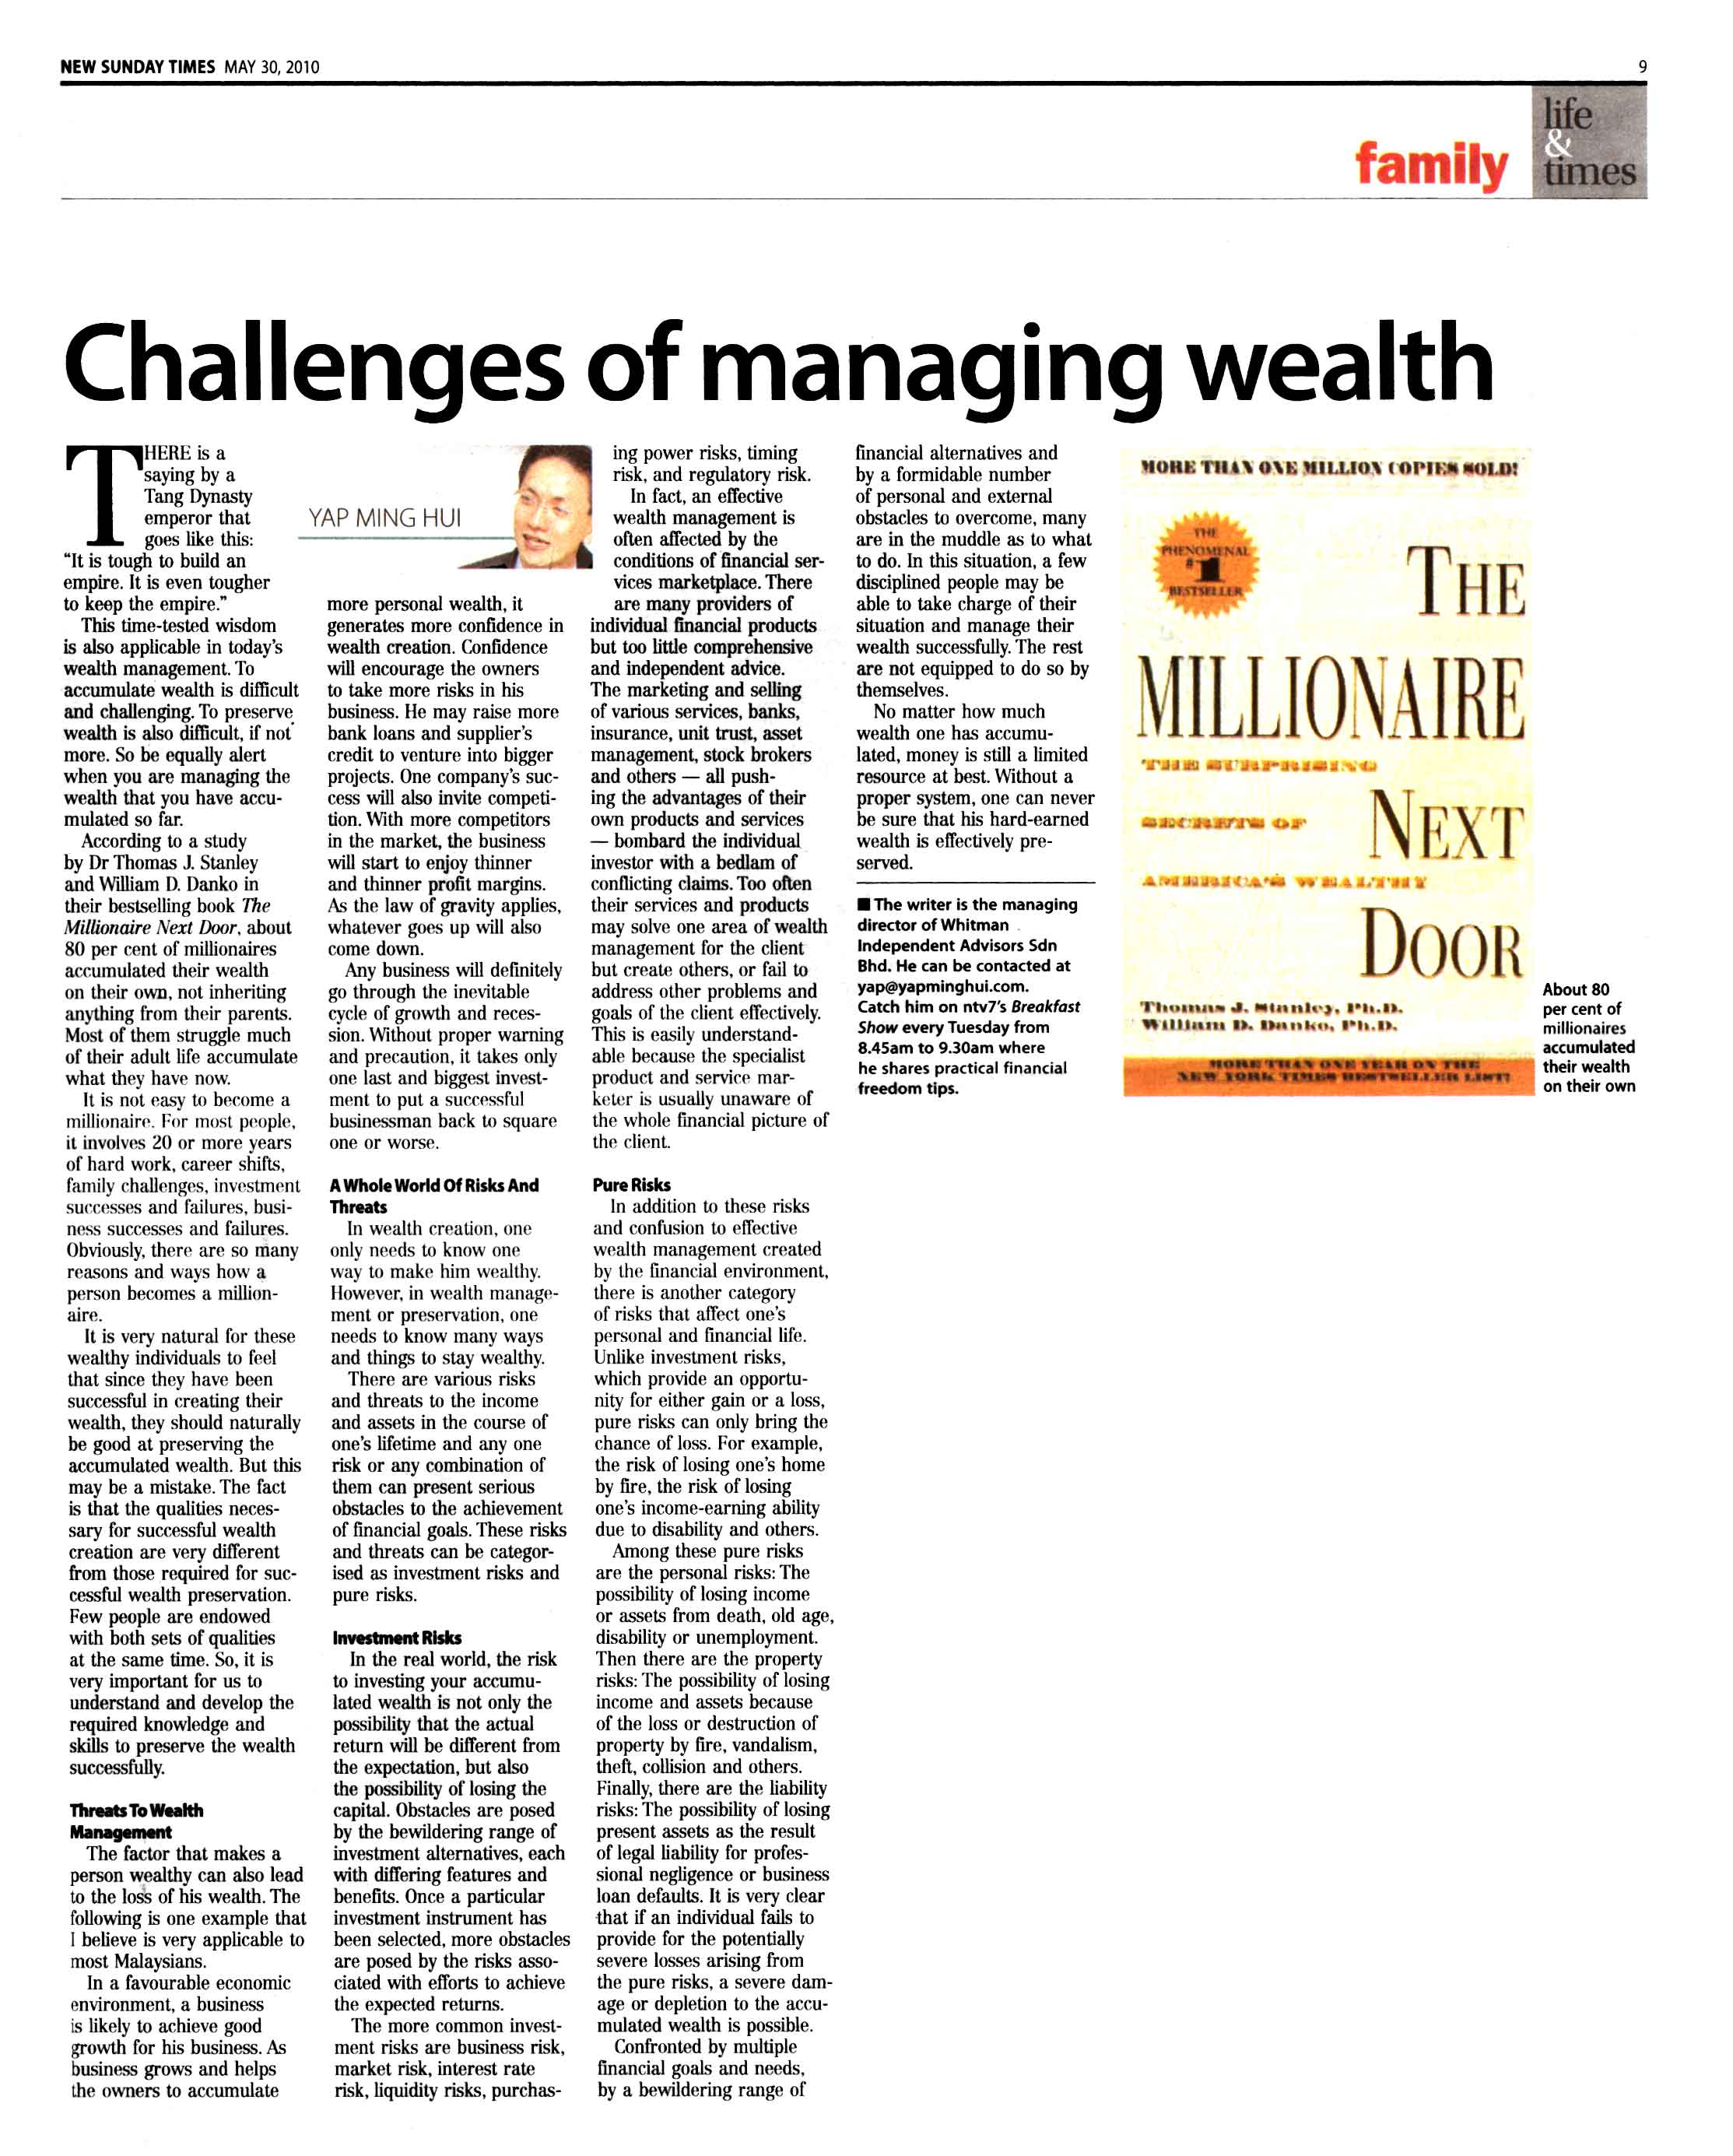 Challenges of managing wealth (New Sunday Times) - 30 May 2010